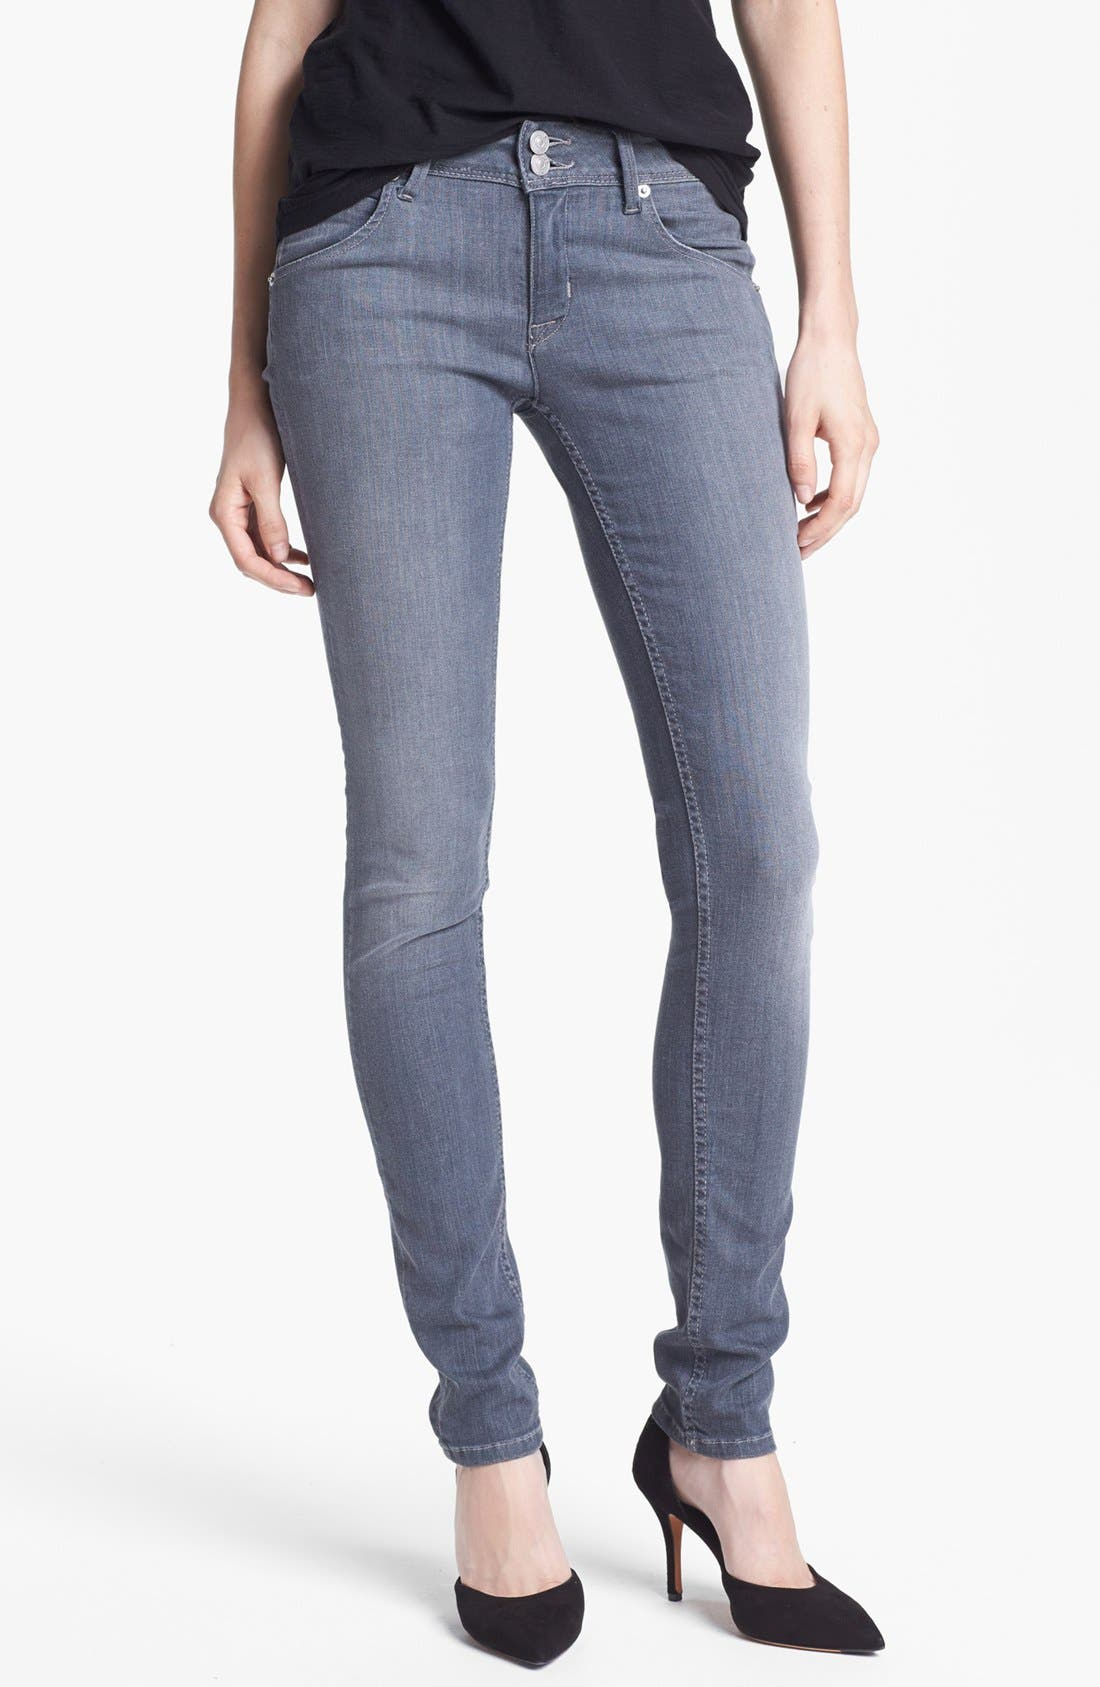 Alternate Image 1 Selected - Hudson Jeans 'Collin' Skinny Jeans (New Romantics)